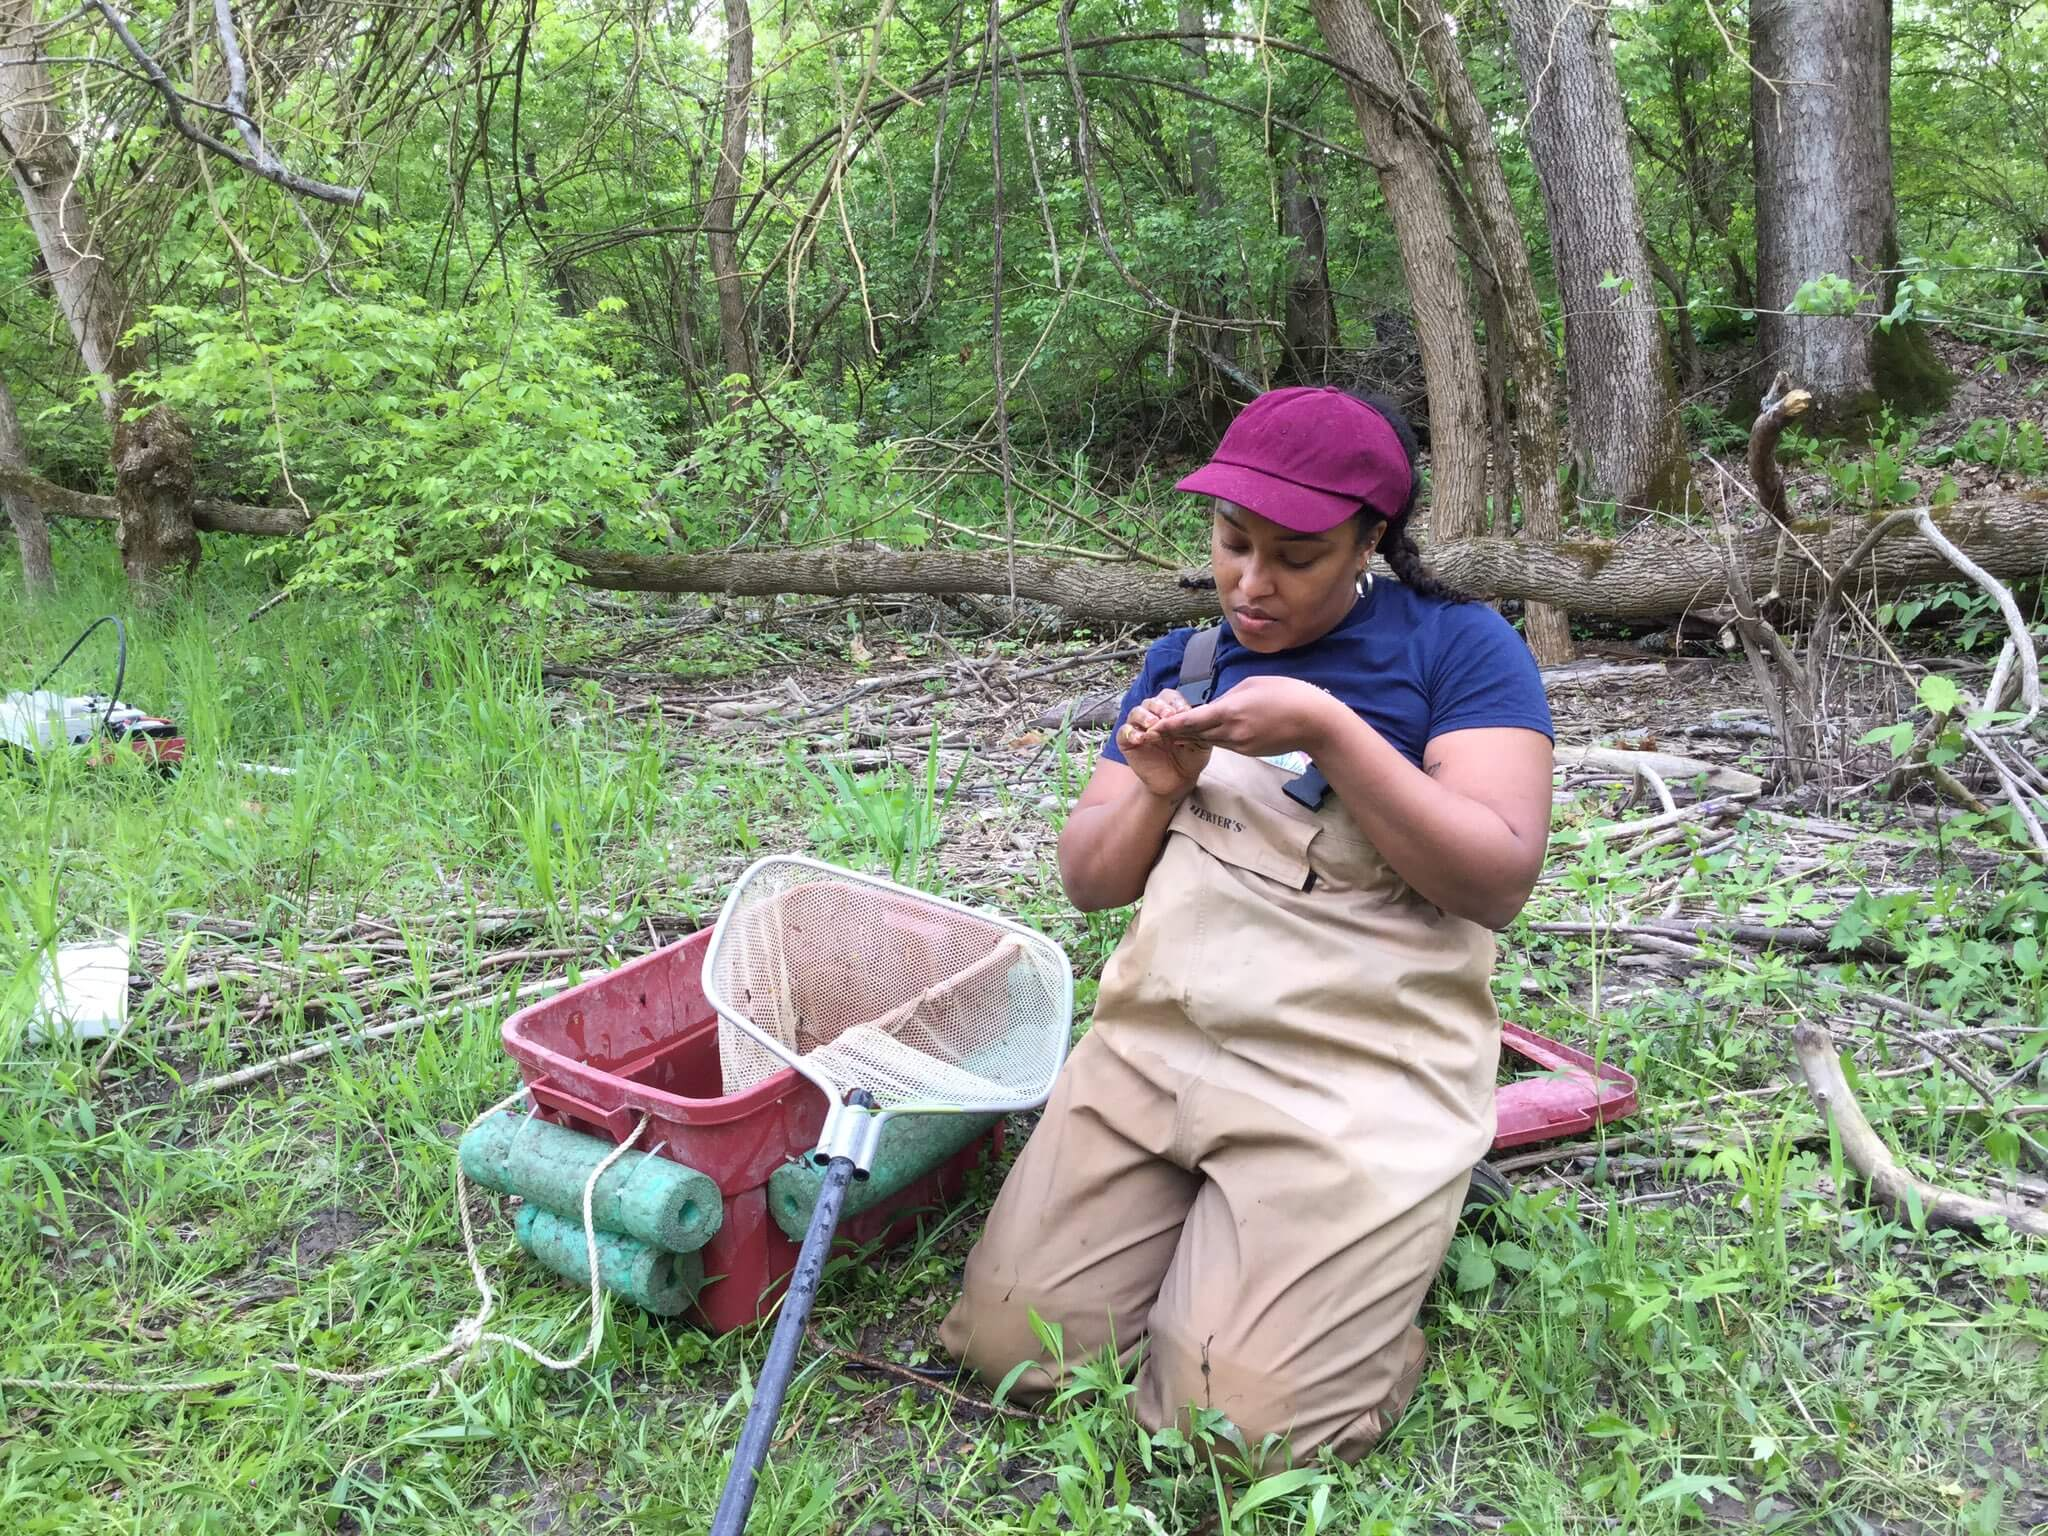 Megan Gunn works collecting specimens to monitor population density and water quality.